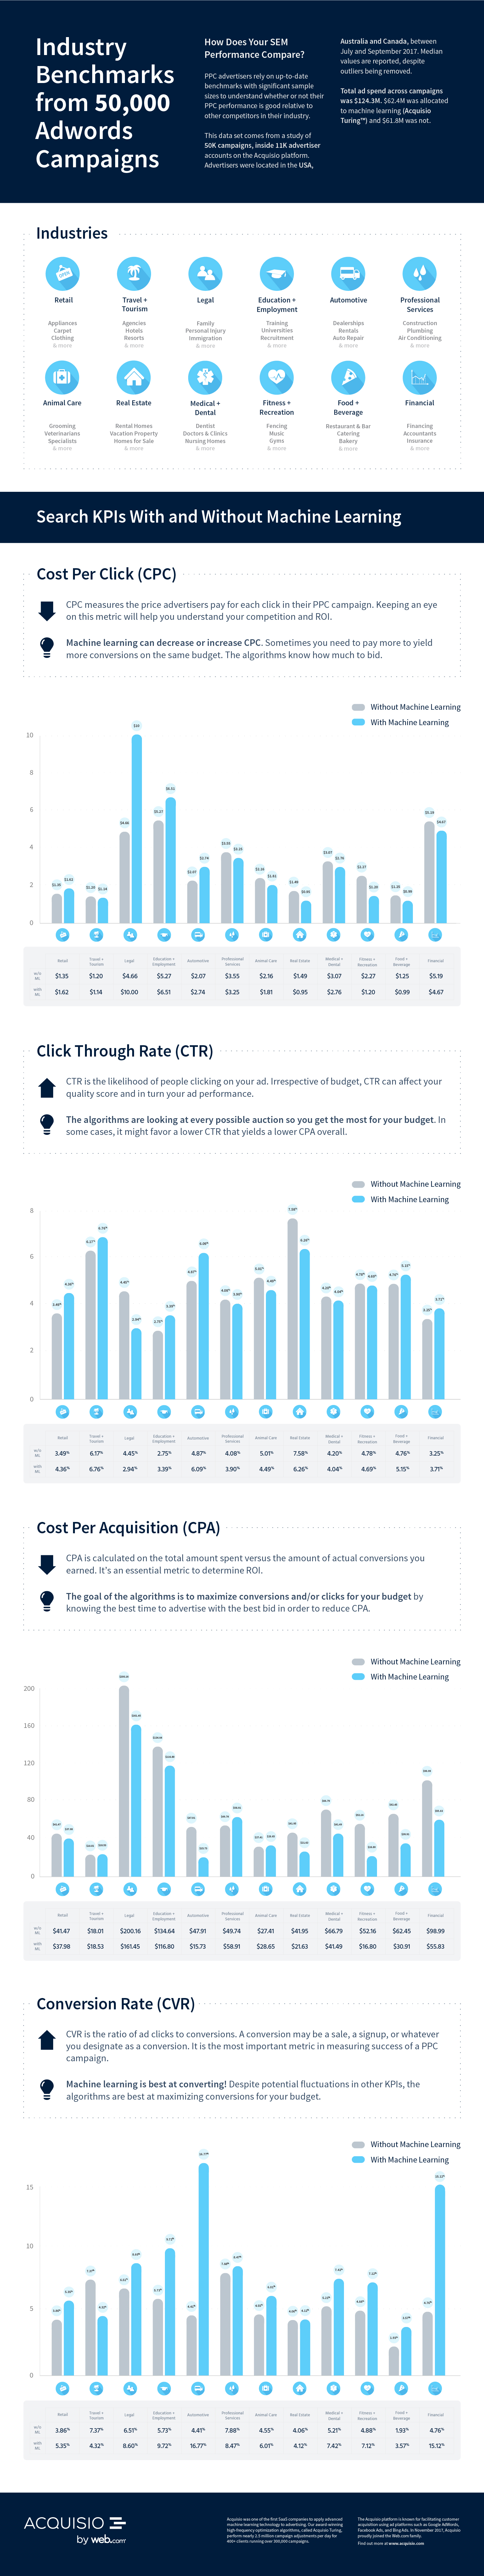 Google AdWords Industry Benchmarks Infographic